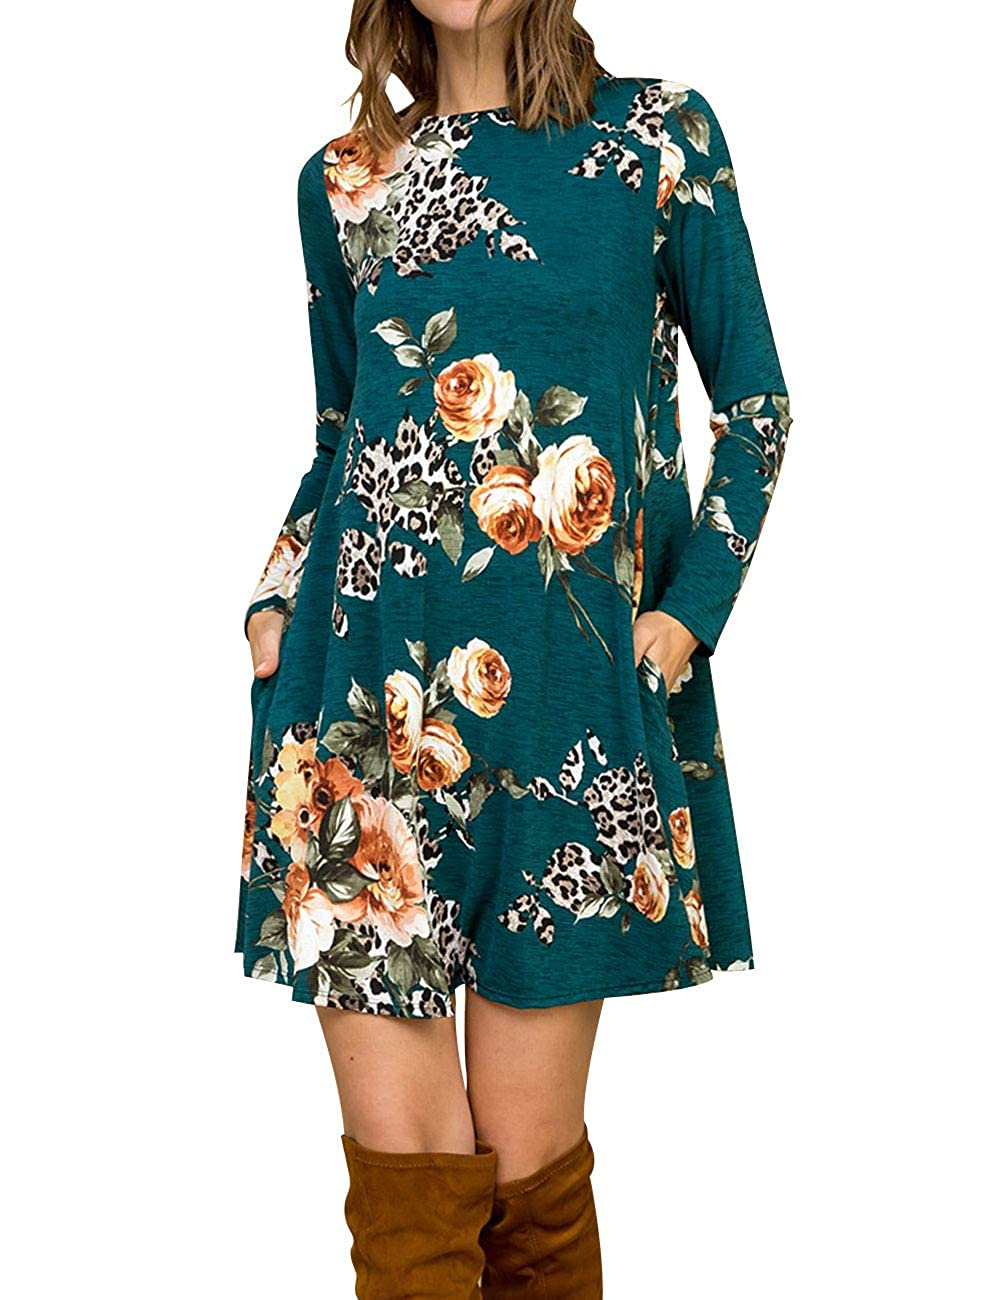 Teal MEROKEETY Women's Long Sleeve Floral Leopard Printed Swing Tunic Dress with Pockets